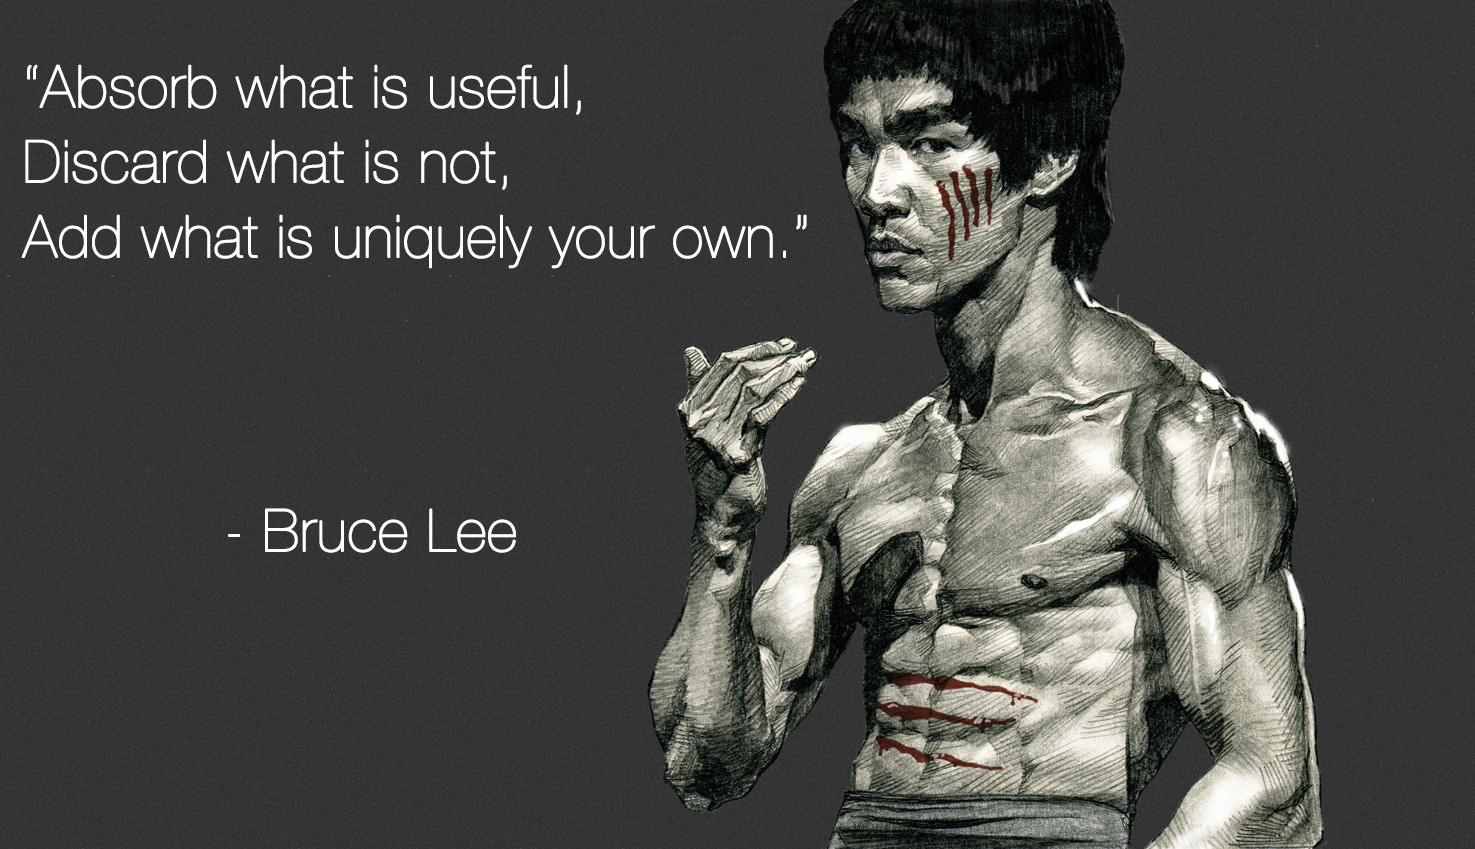 How Bruce Lee Influenced The World 40 Years After His Death